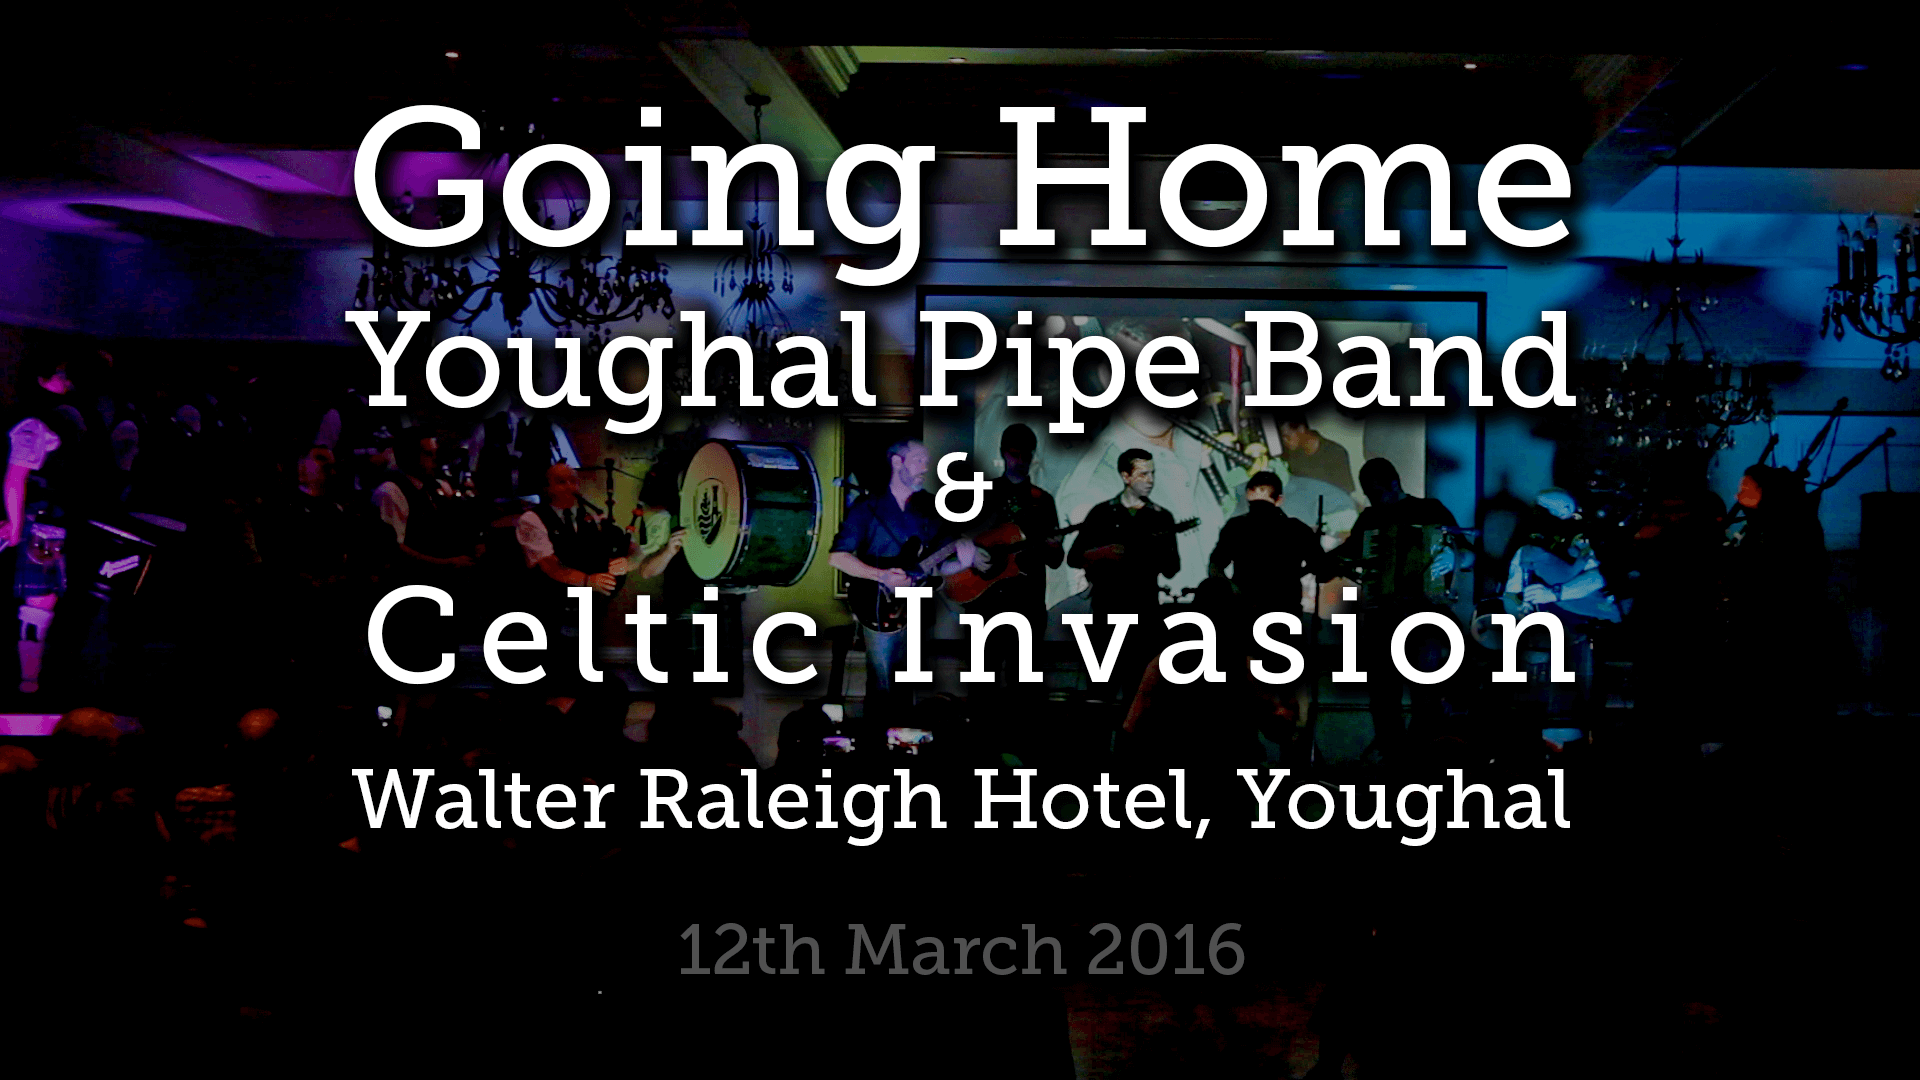 Youghal Pipe Band in Concert - Going Home - Celtic Invasion